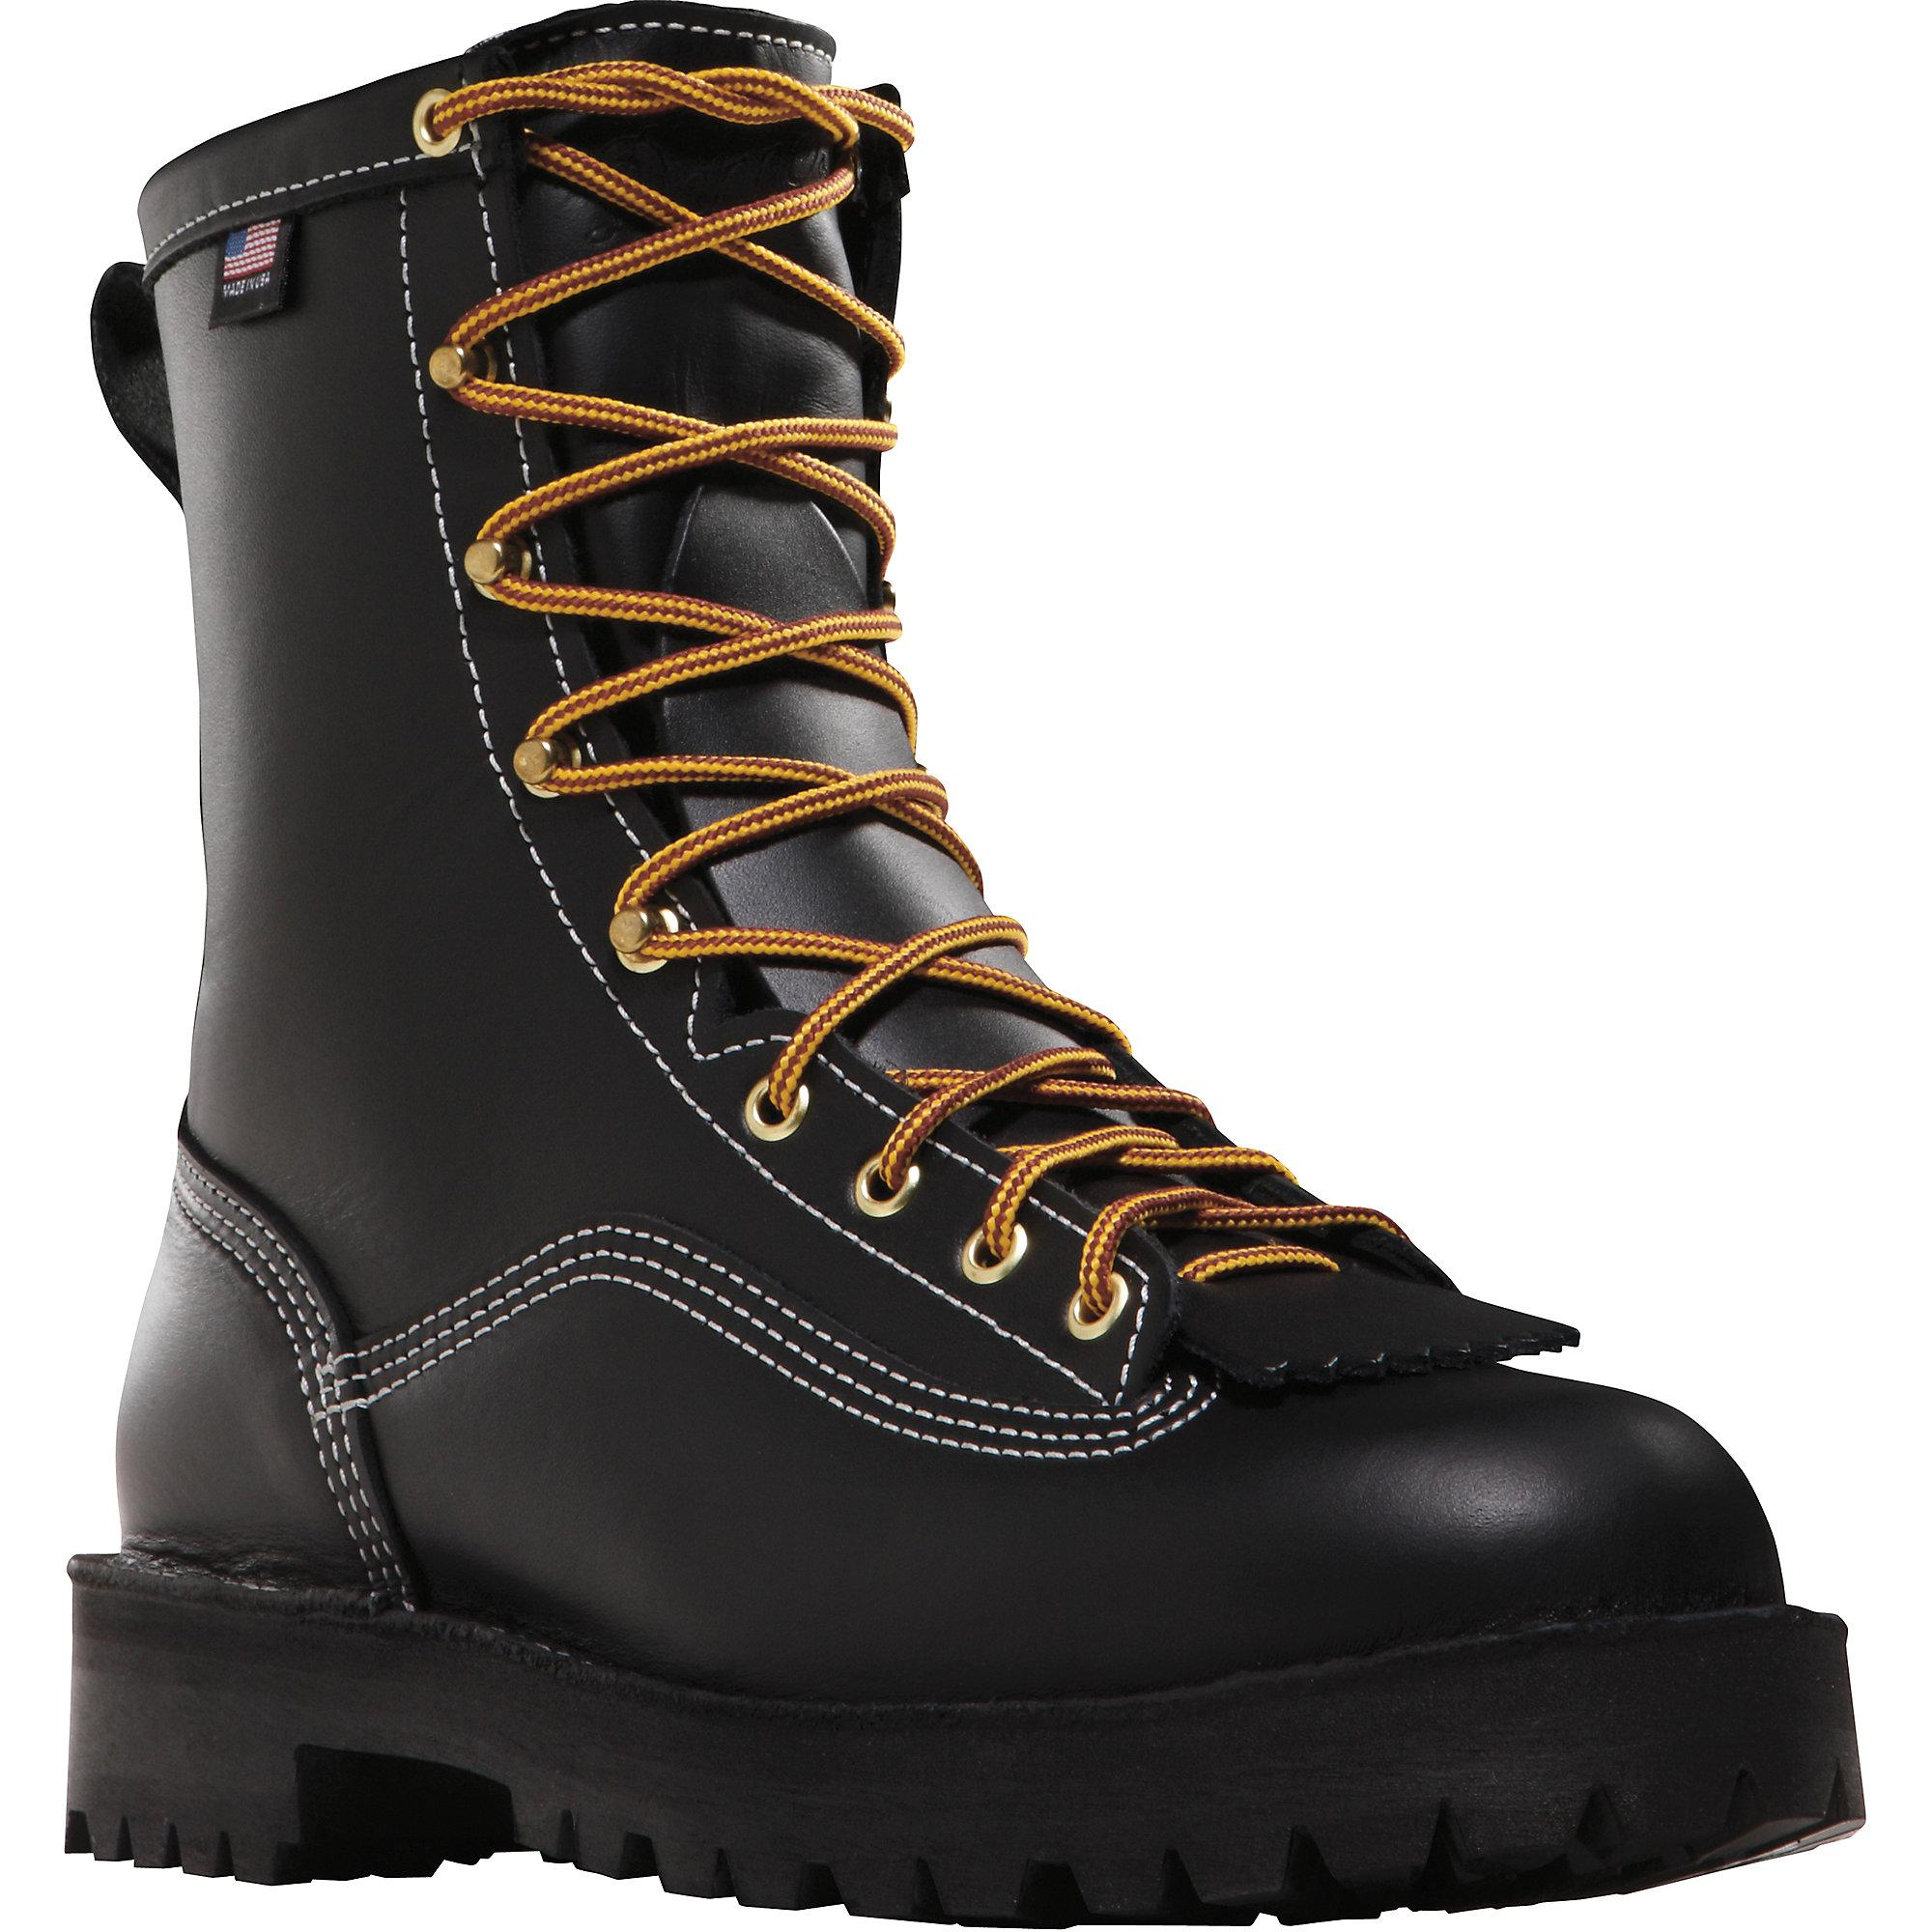 Danner Leather Super Rain Forest 200g Insulated 8in Gtx